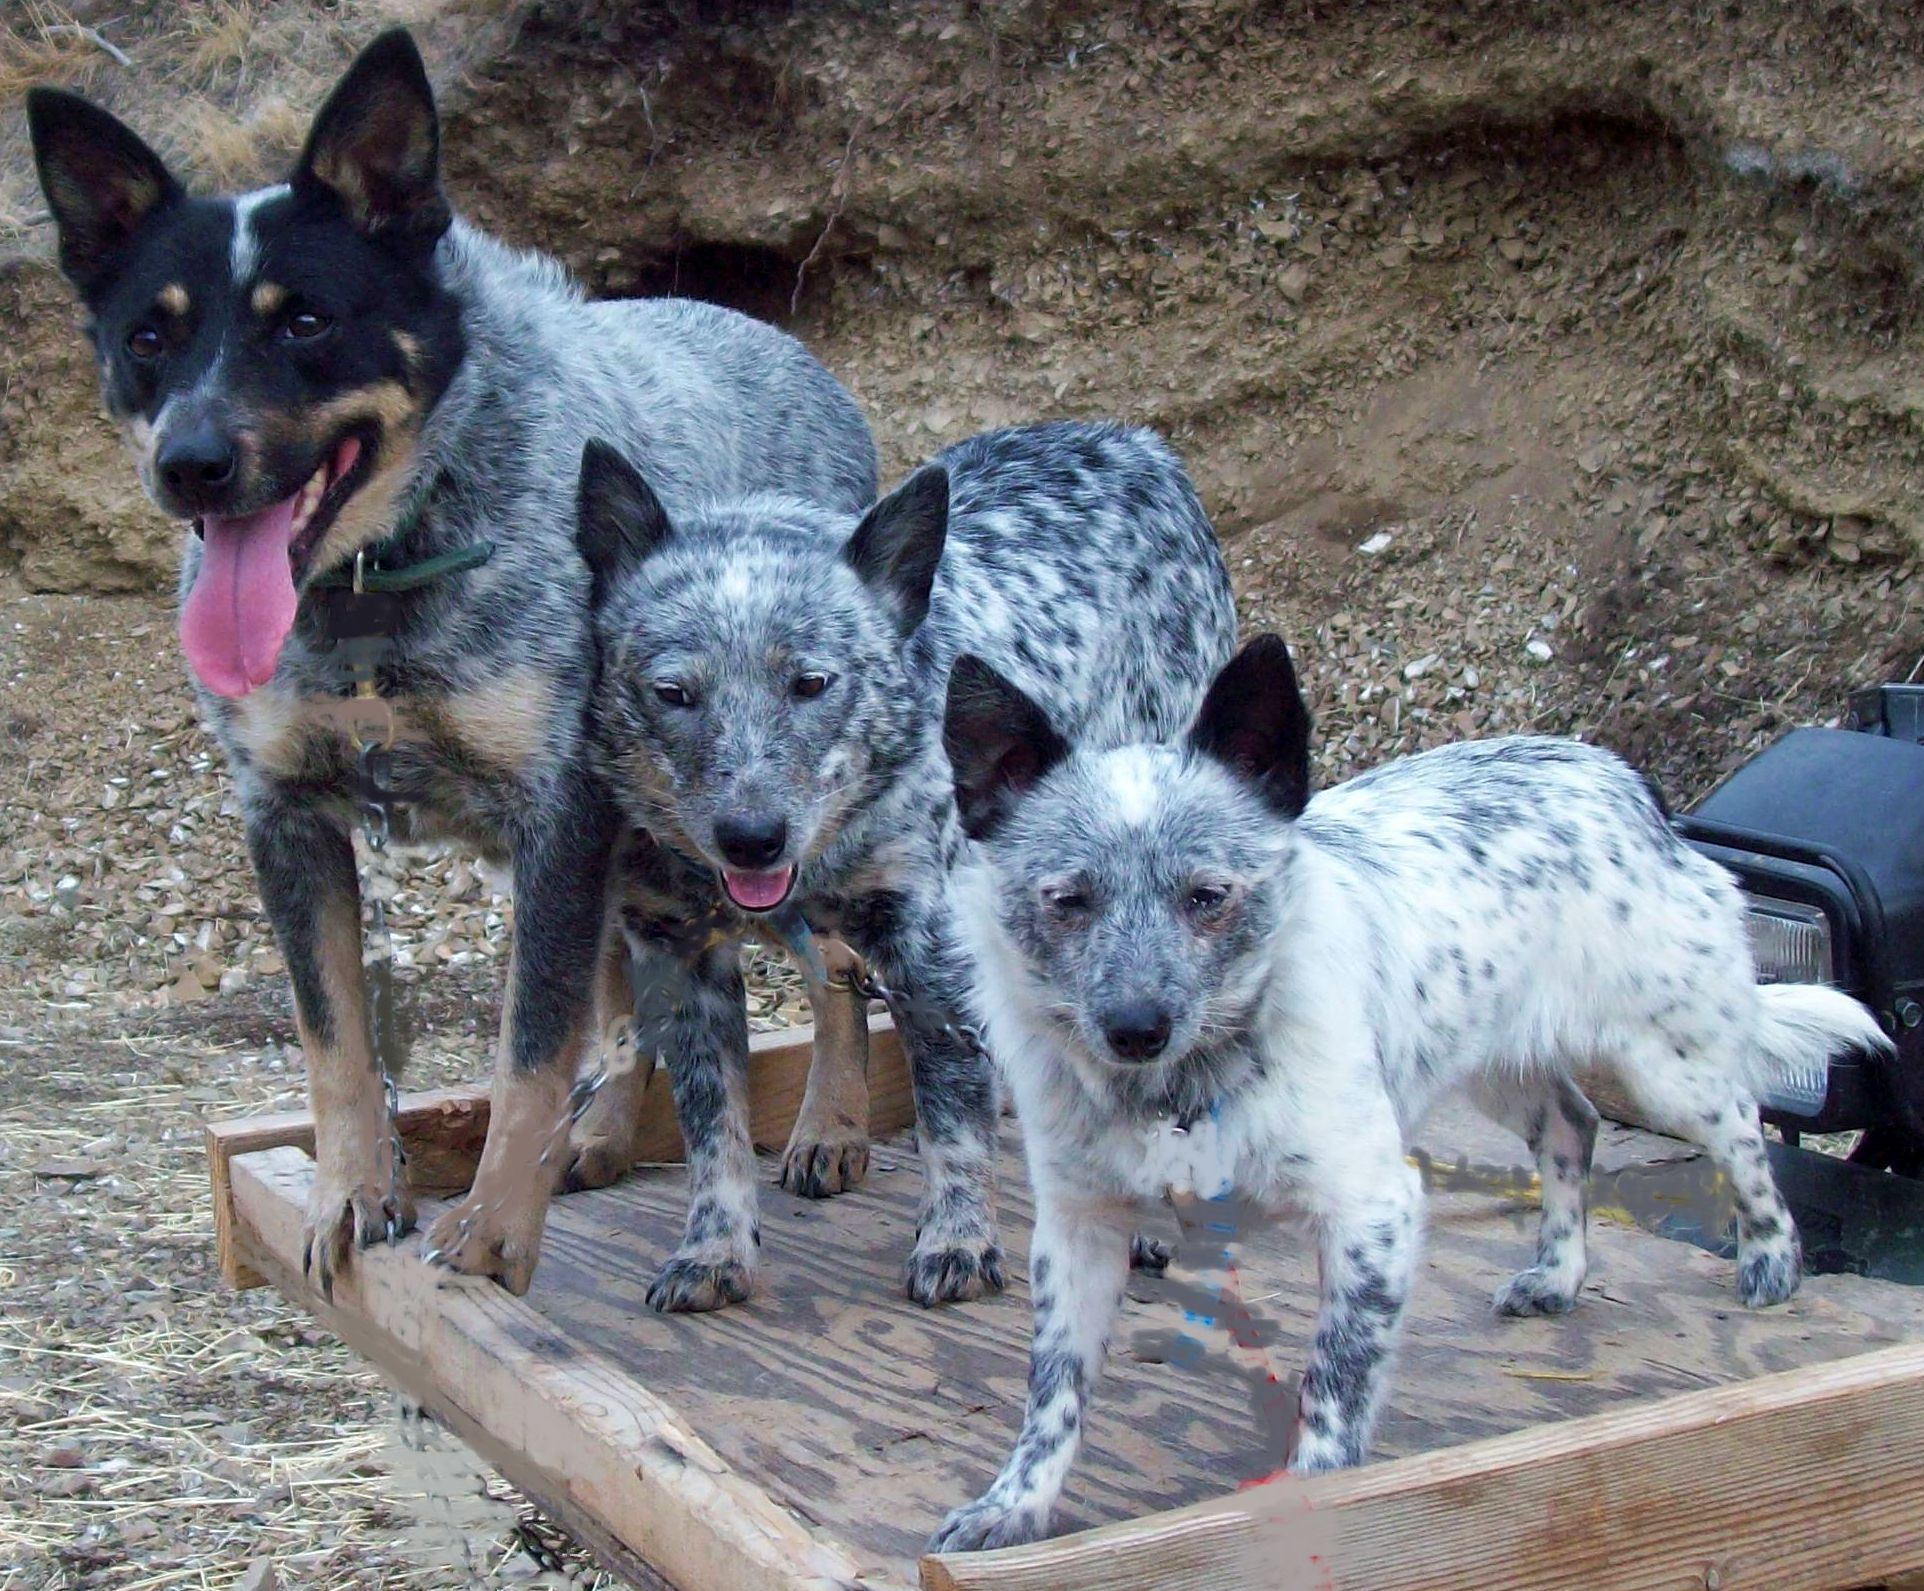 mini queensland heeler - Google Search | Australian Cattle Dogs ...